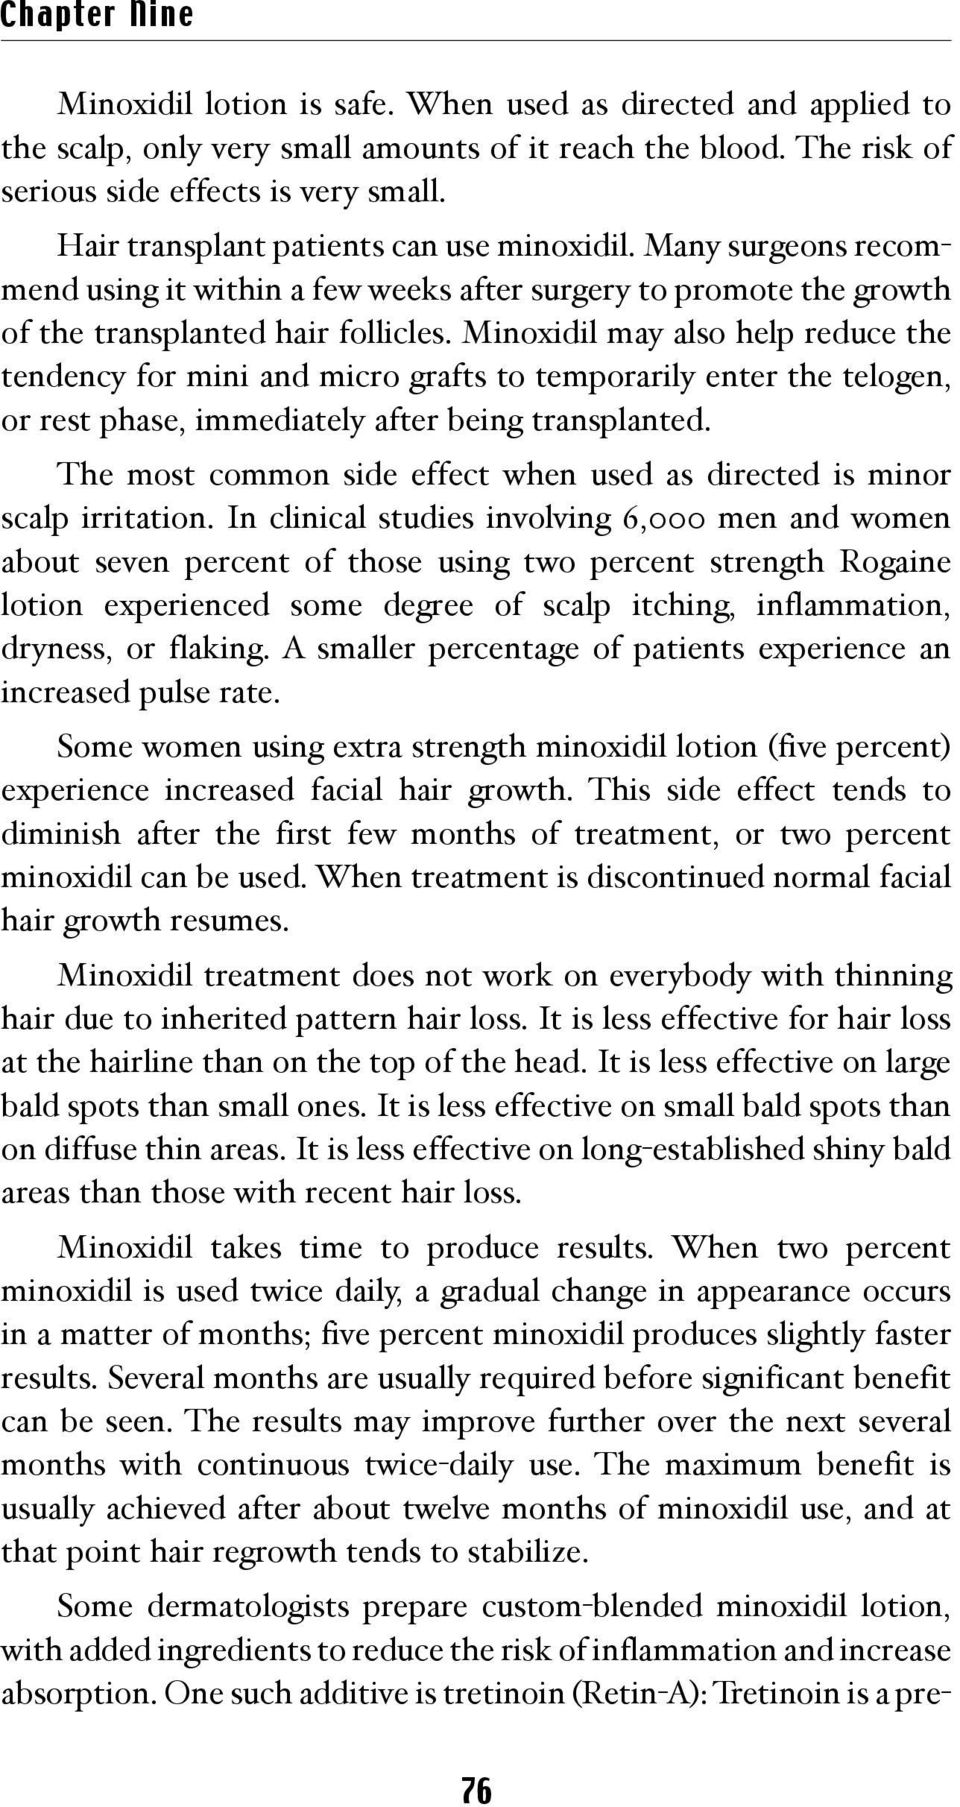 Minoxidil may also help reduce the tendency for mini and micro grafts to temporarily enter the telogen, or rest phase, immediately after being transplanted.